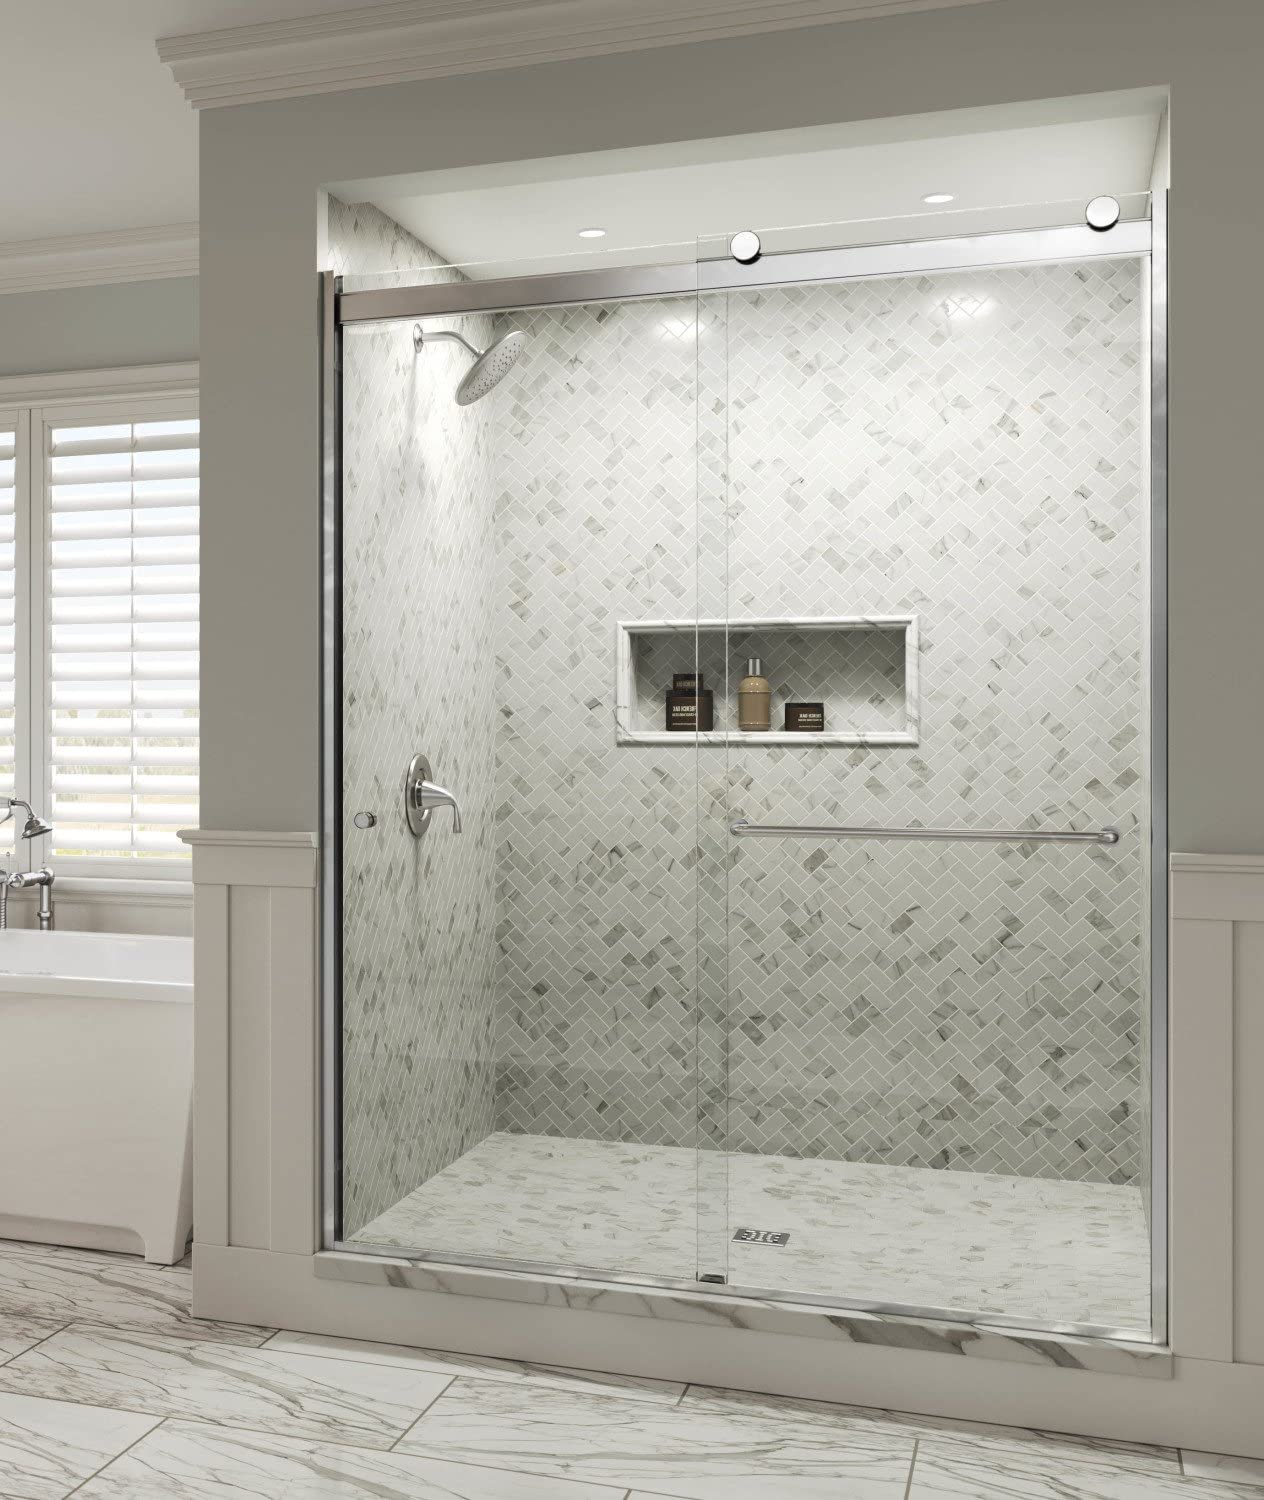 Basco Shower Door RTLH05B5670XPSV Rotolo x in. 52-1 Award Wide 40% OFF Cheap Sale 16-56